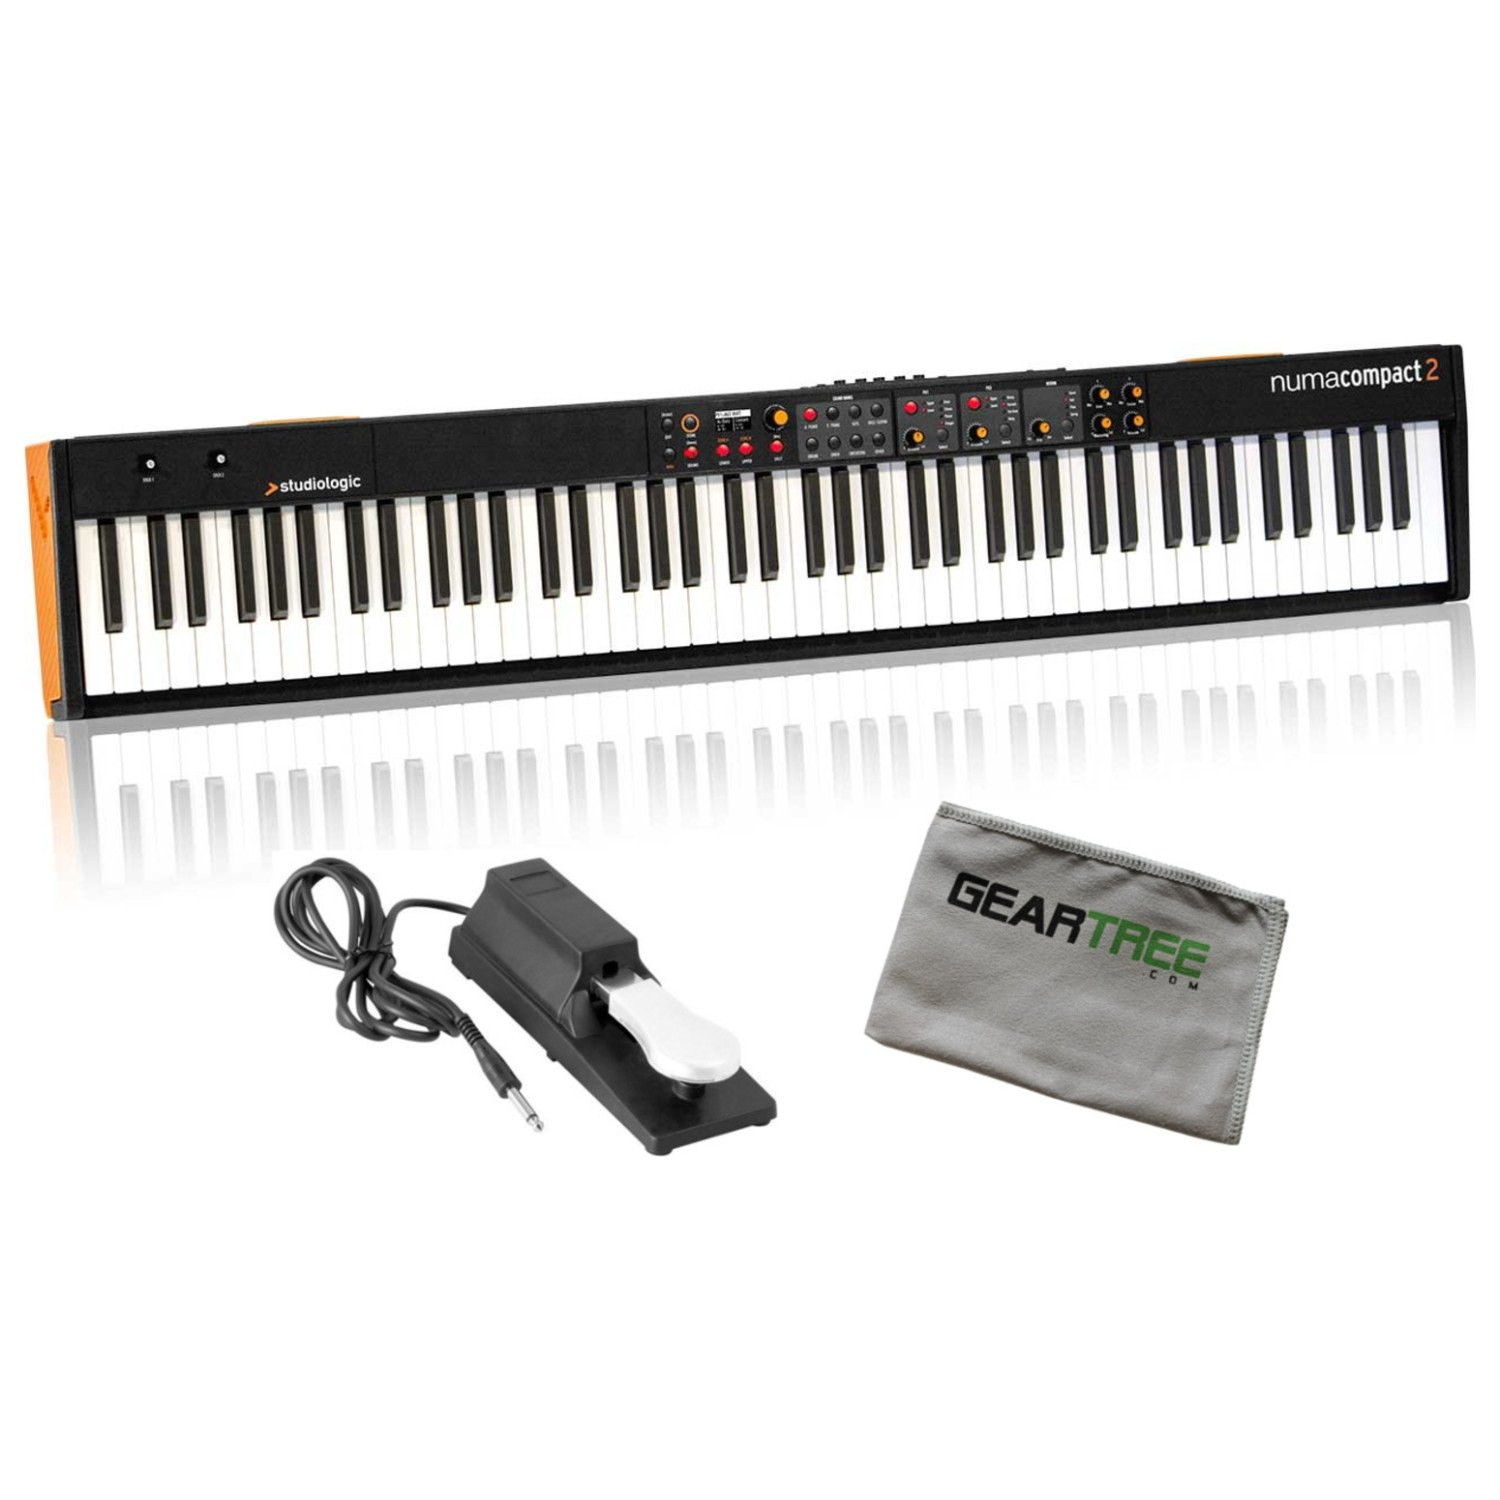 Studiologic Numa Compact 2 88 Note Semi Weighted Keyboard w/Geartree Cloth and